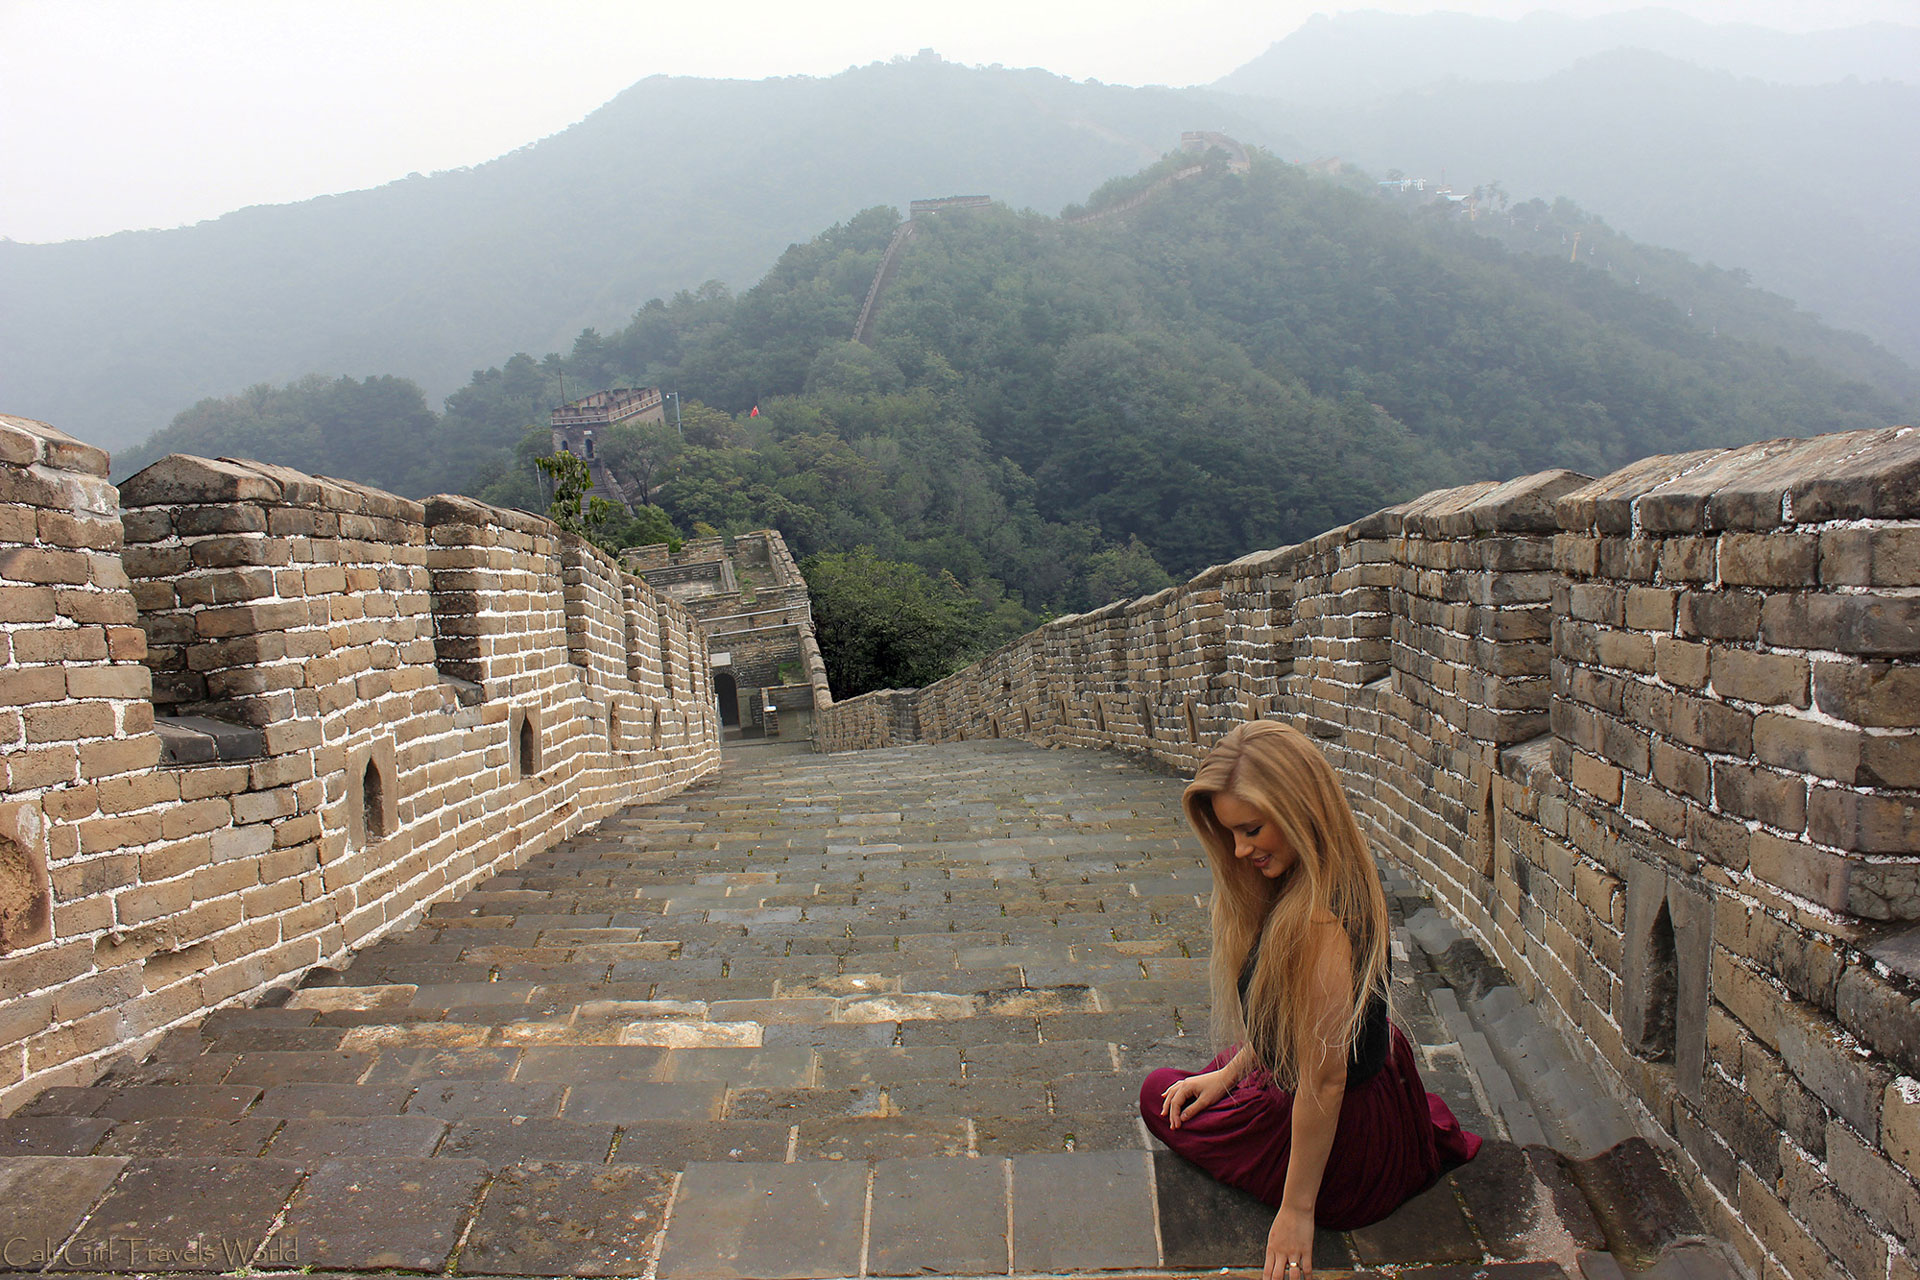 CaliGirlTravelsWorld sitting along the Great Wall of China alone.